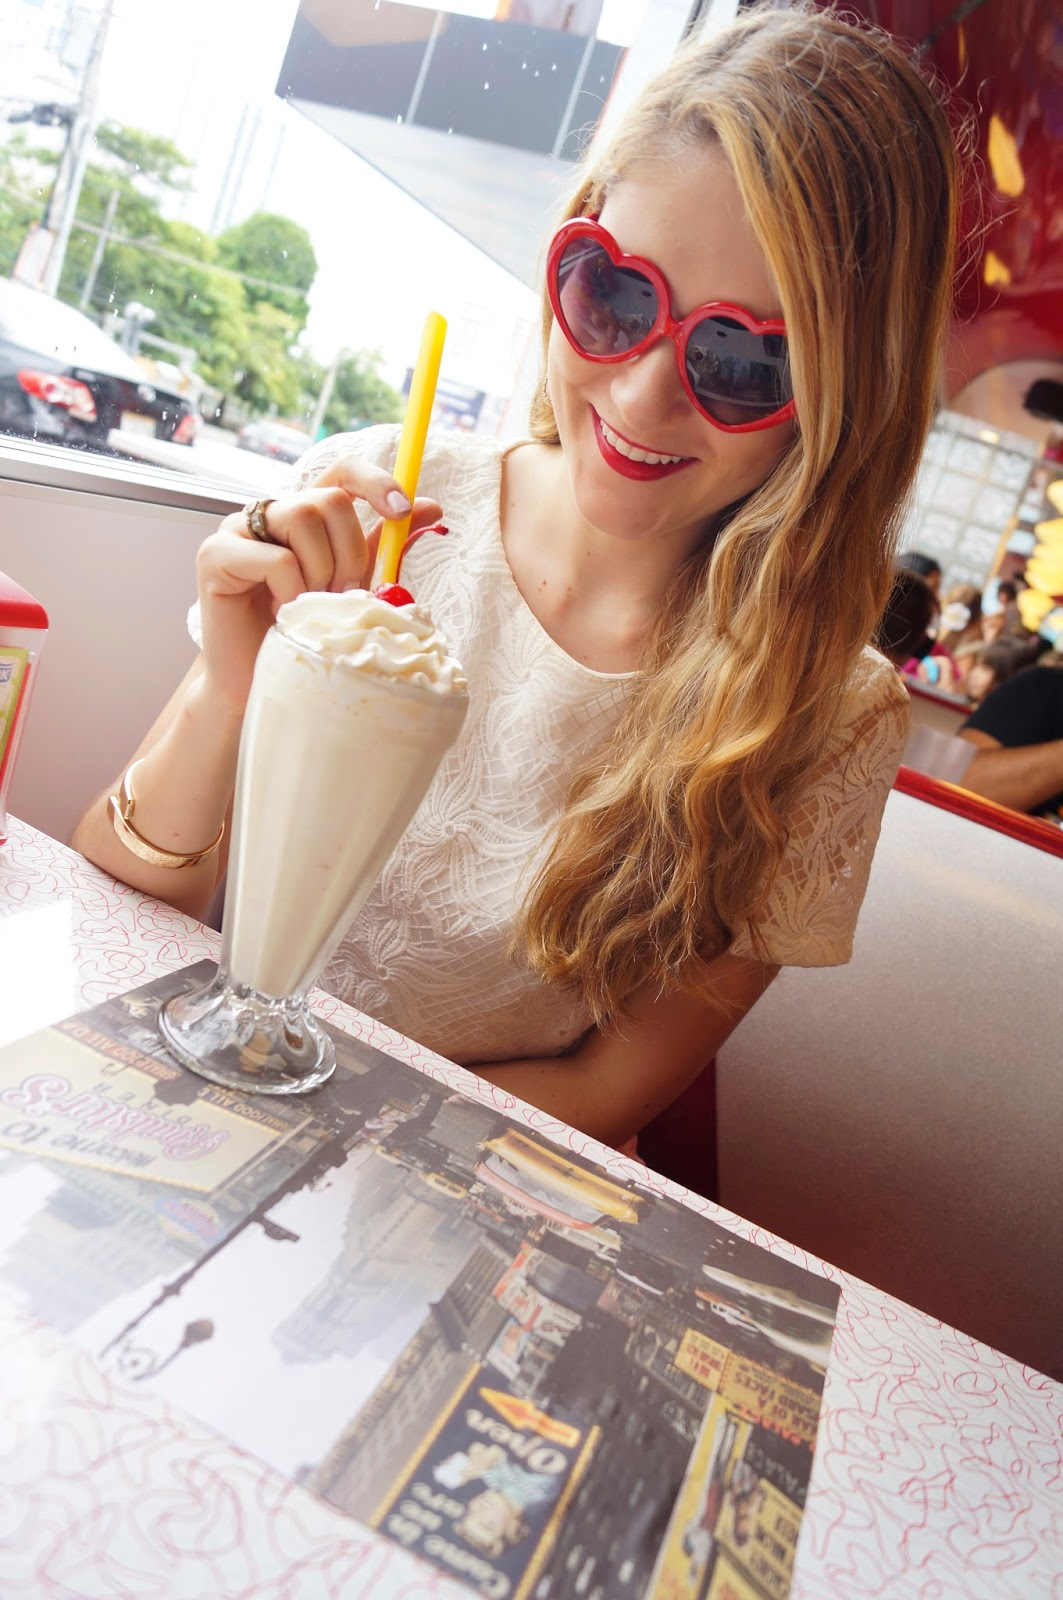 Delicious Milkshake from Roadsters Diner